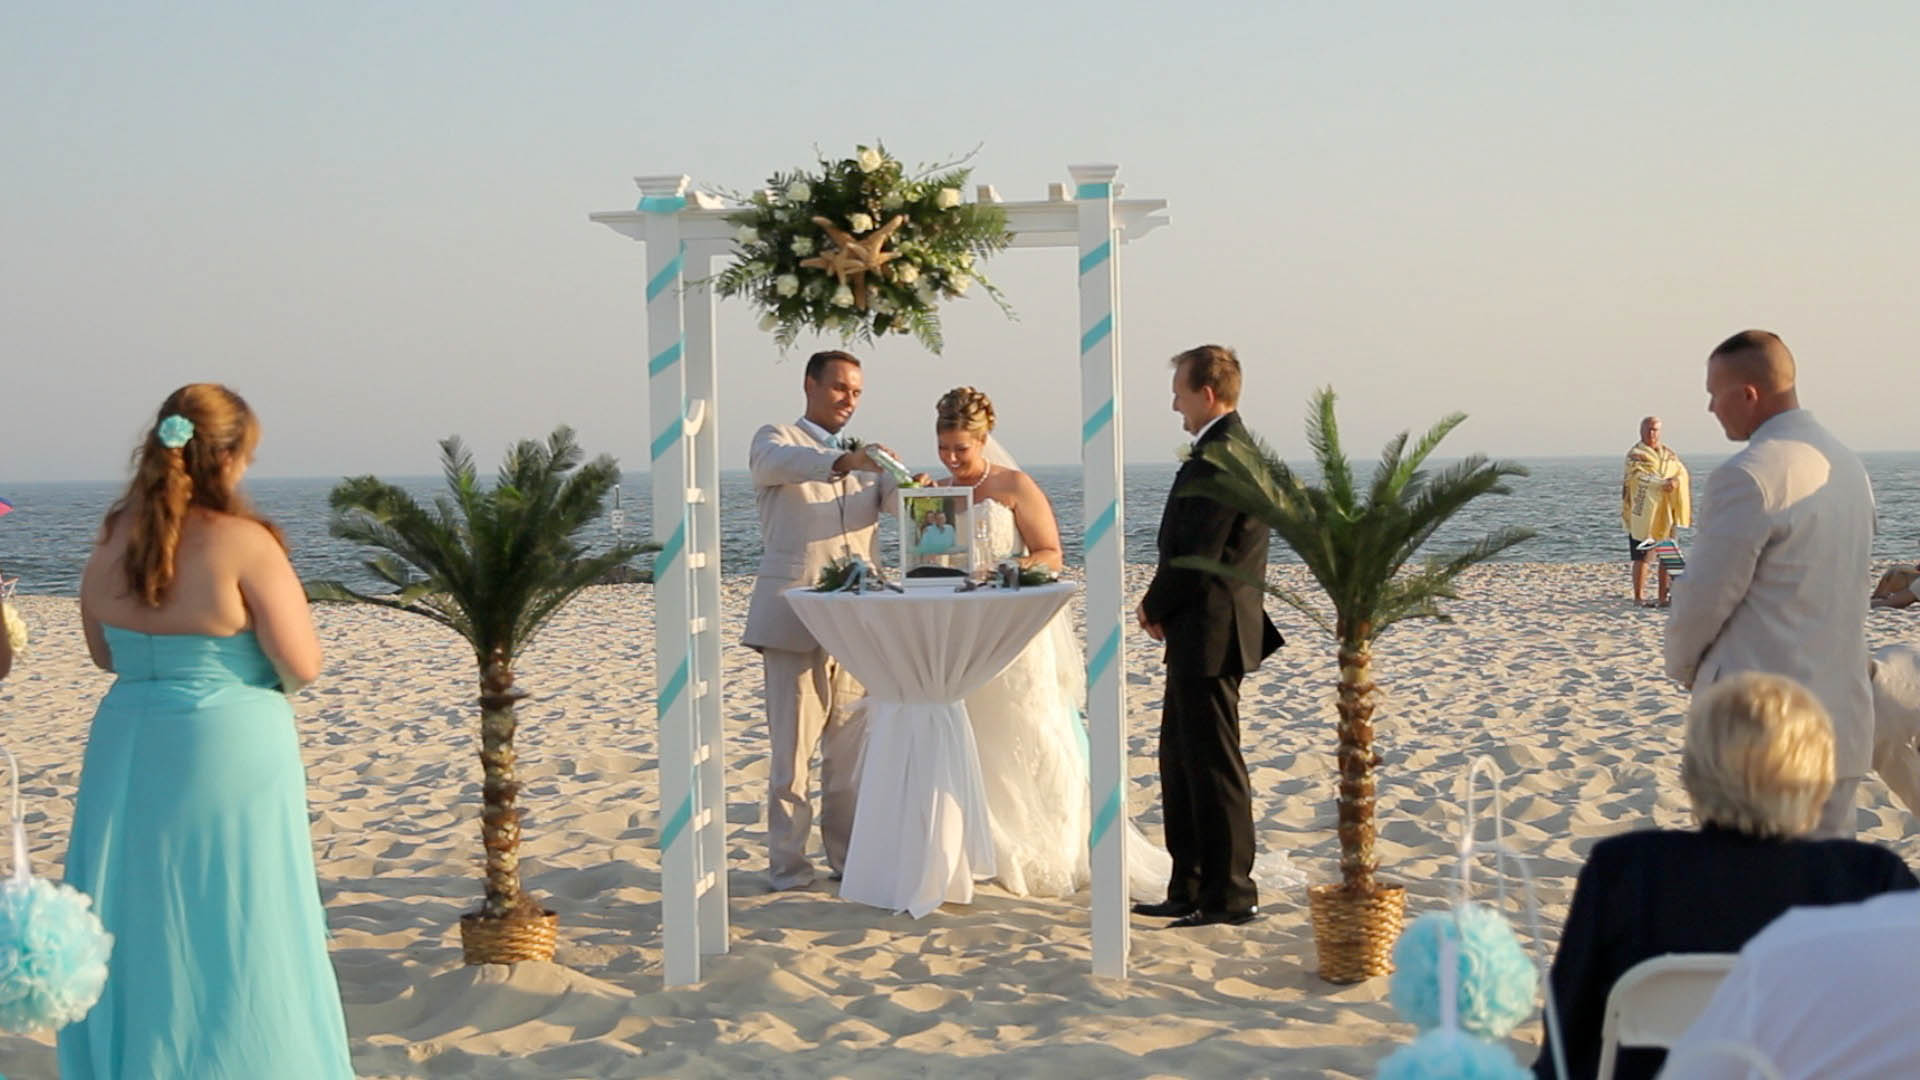 Sand Ceremony Wedding.Blending Sands Ceremony 2015 Wedding Trends Videography